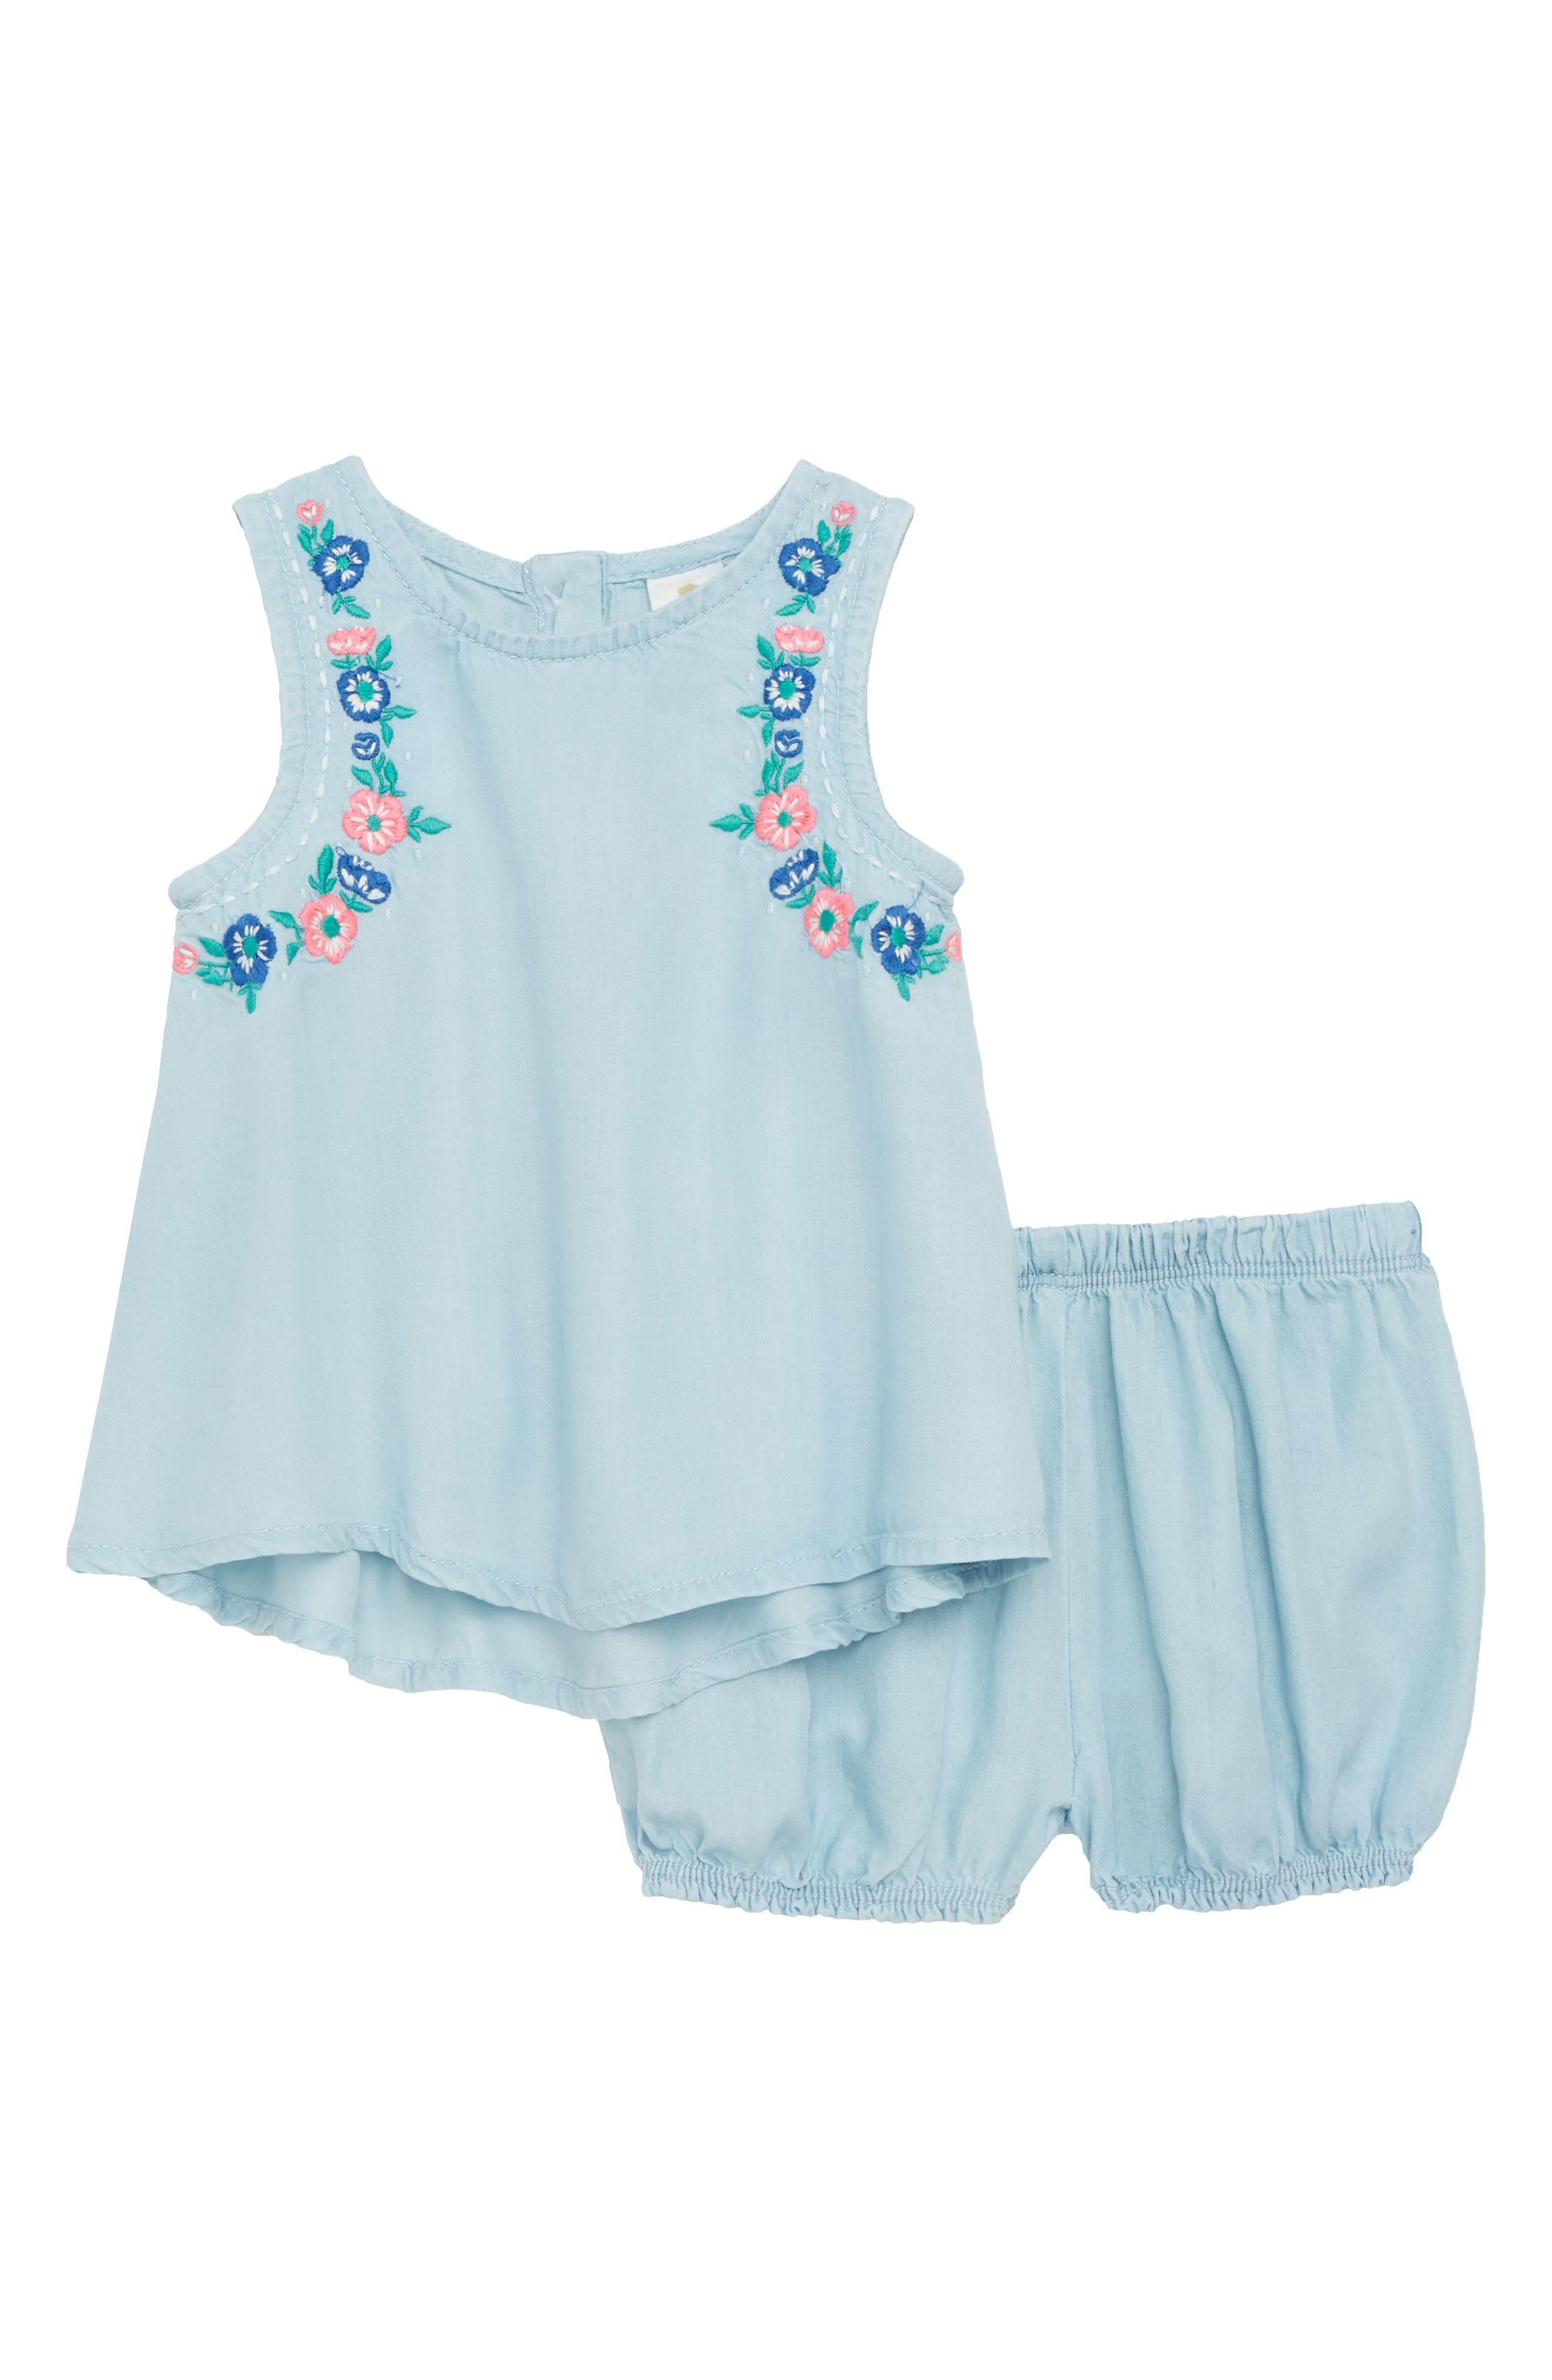 Embroidered Swing Top & Bloomers,                             Main thumbnail 1, color,                             450